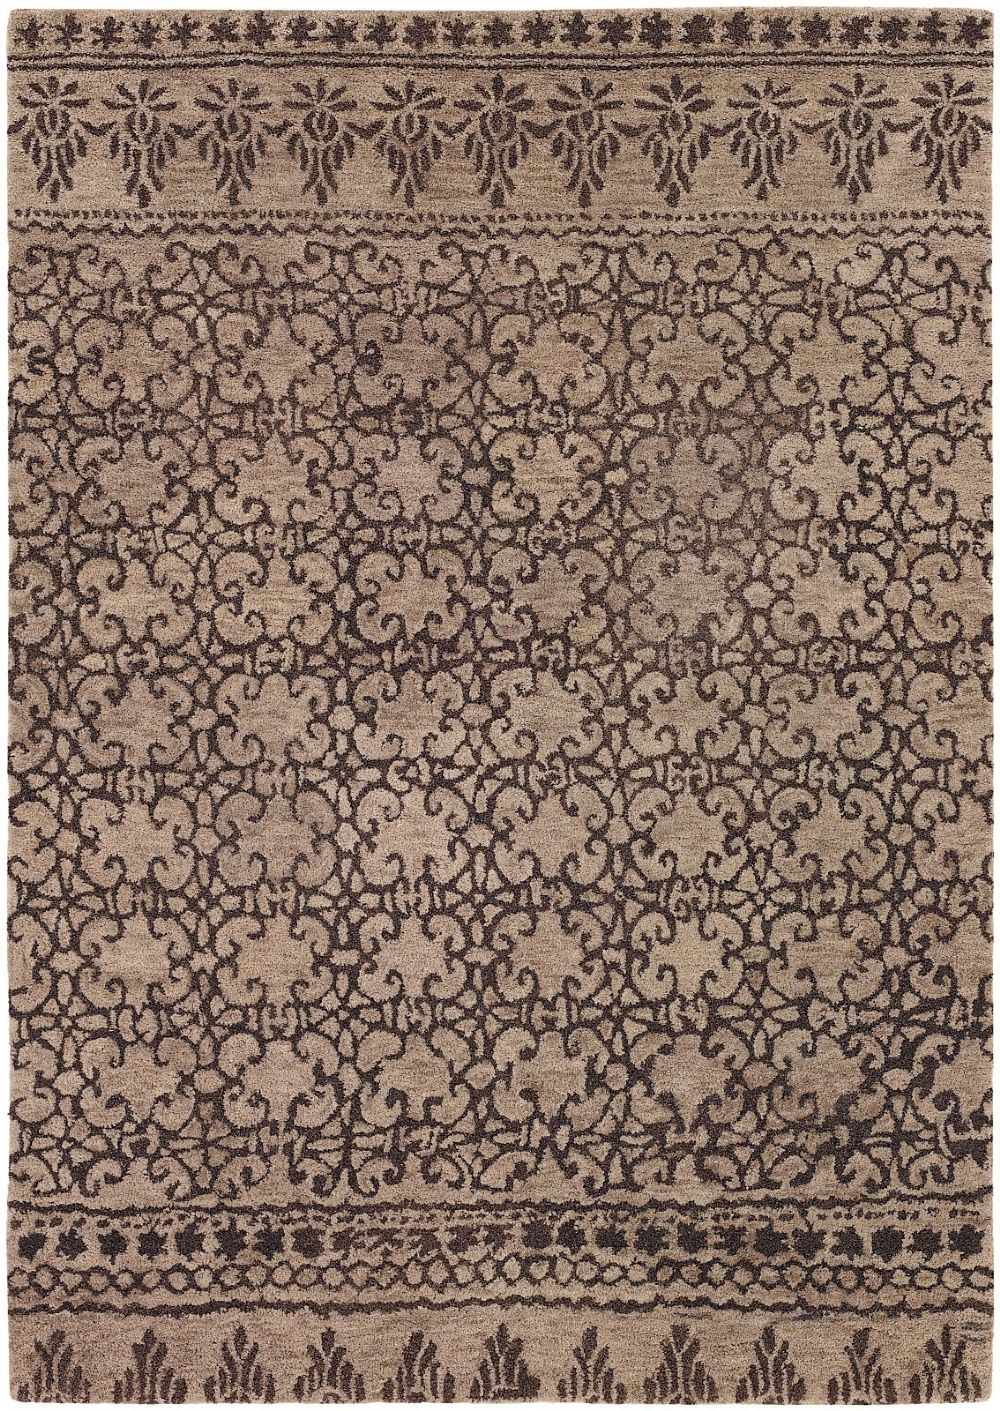 chandra berlow contemporary area rug collection